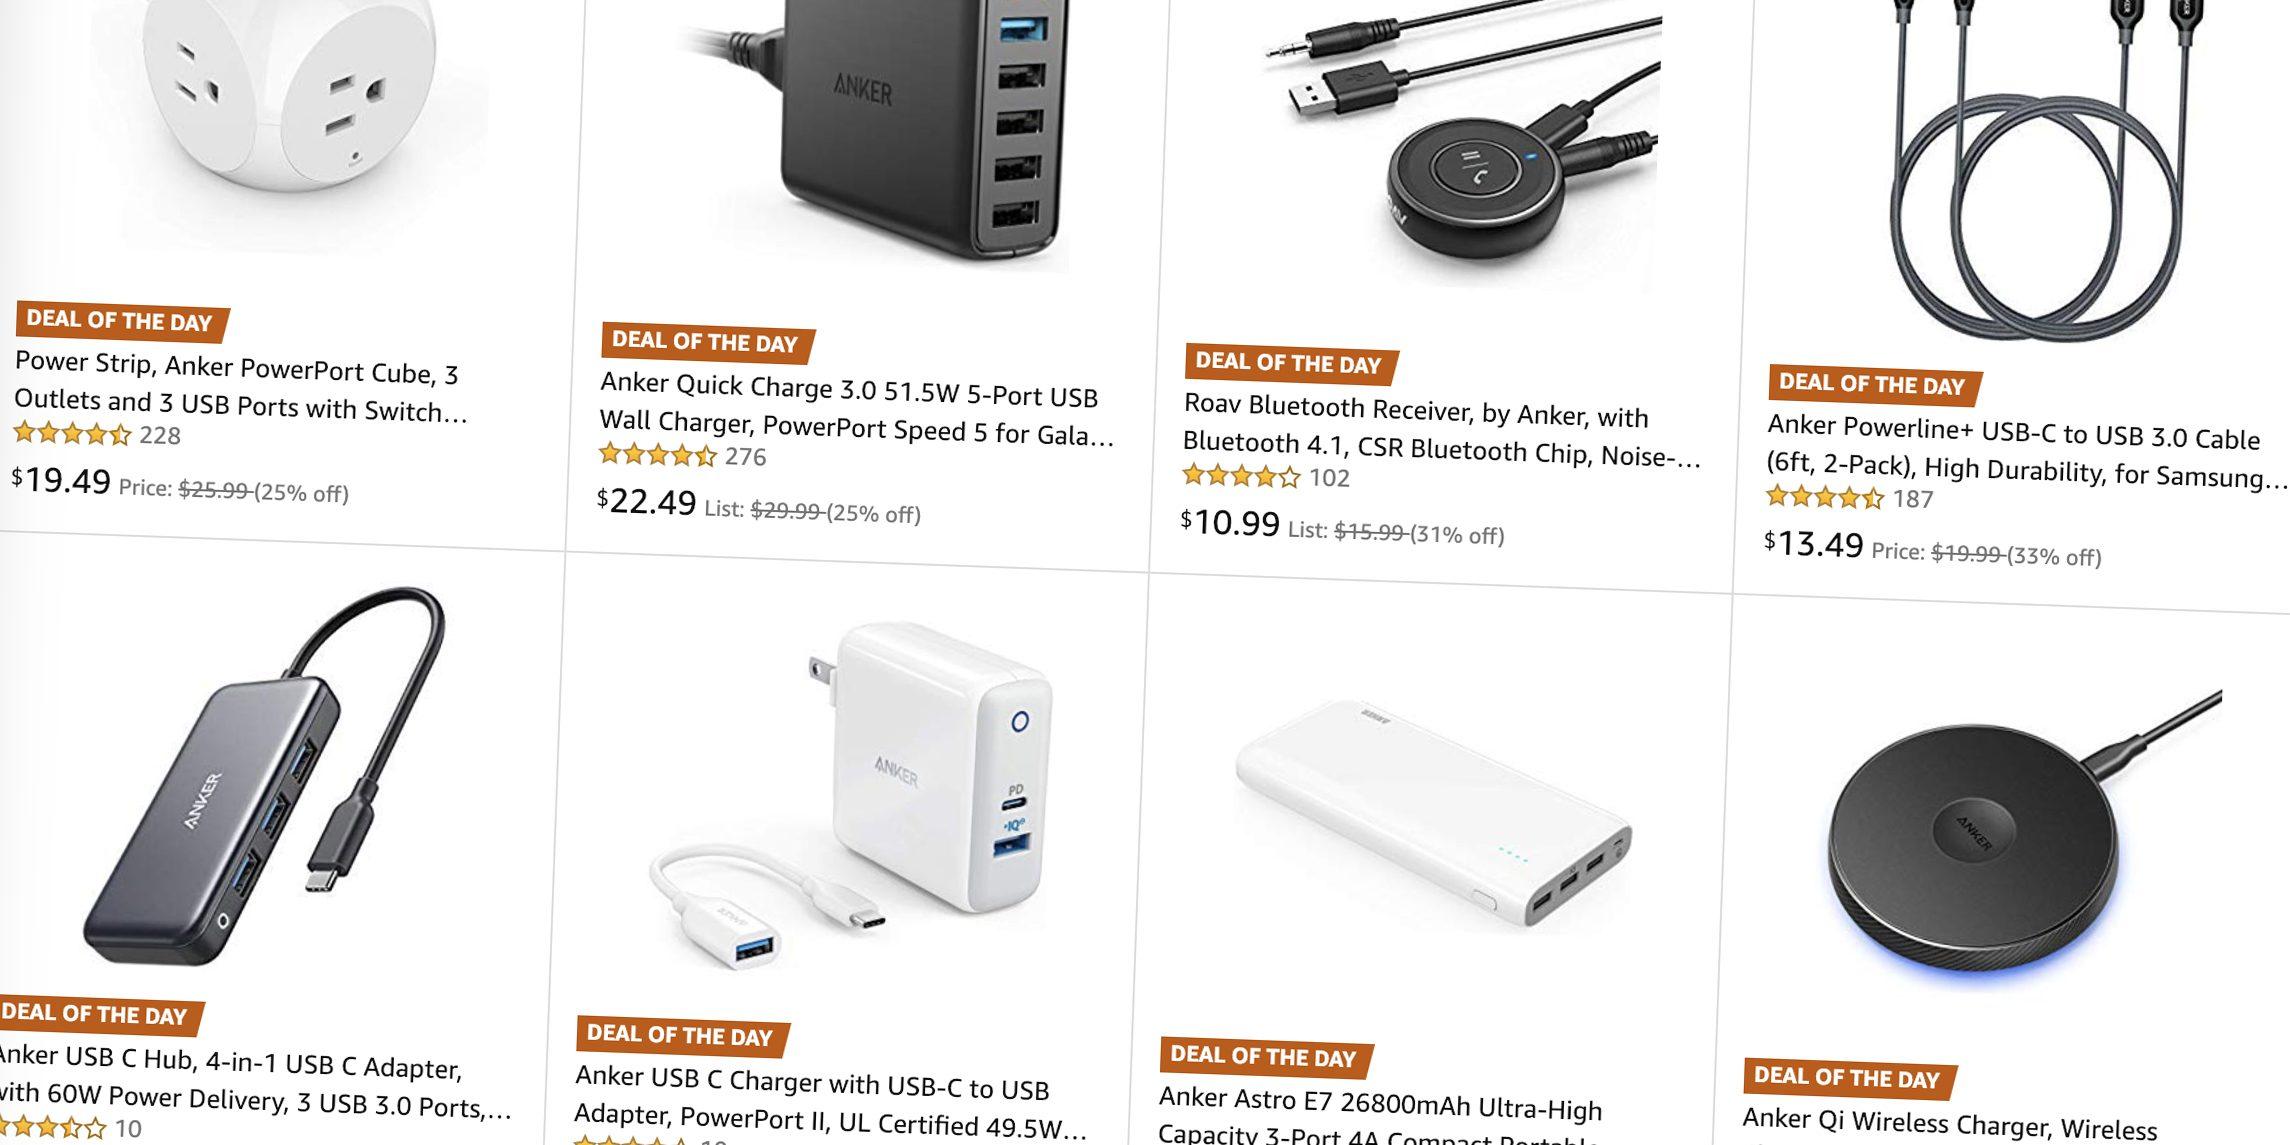 9to5Toys Mittagspause: Anker Gold Box ab 11 $, Philips Hue HomeKit Lighting 25% aus, Fire TV Cube 60 $, mehr